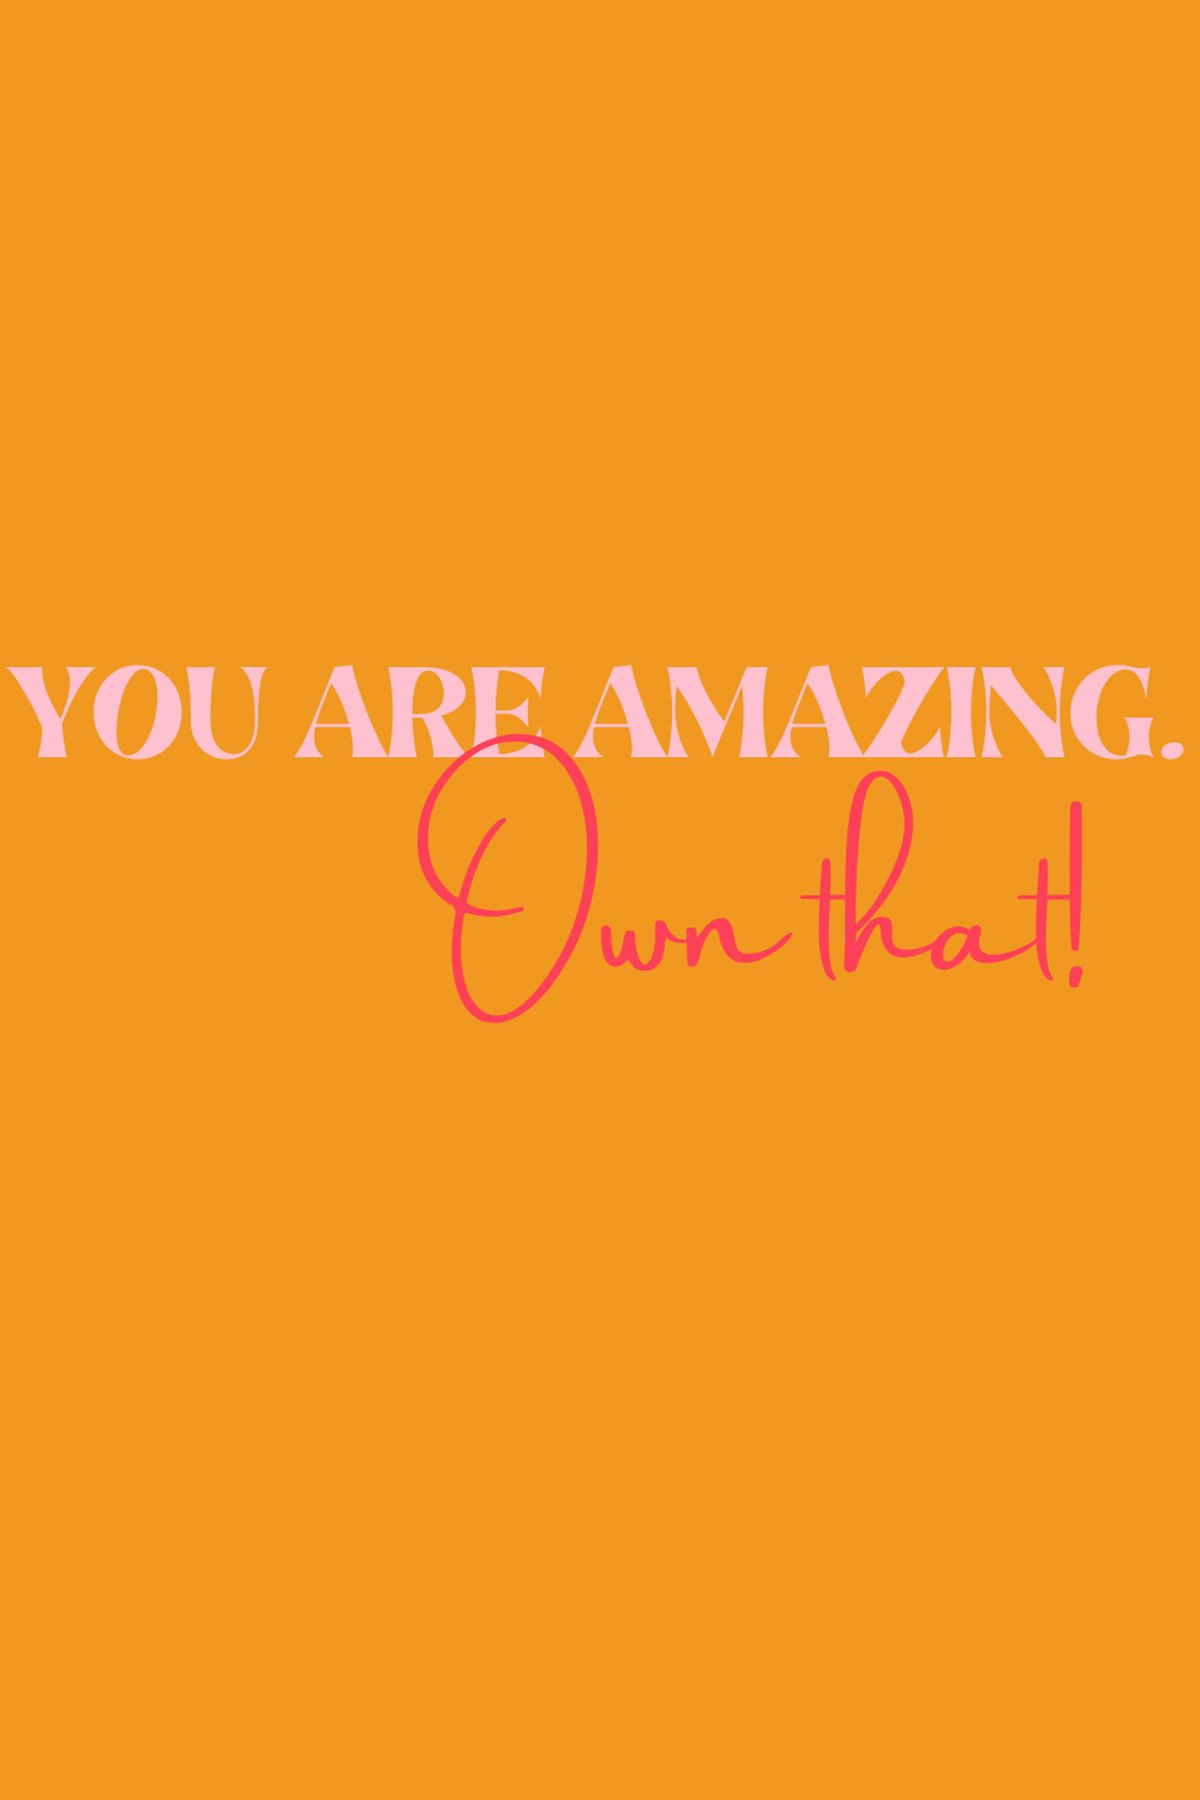 Girl boss quotes about being amazing